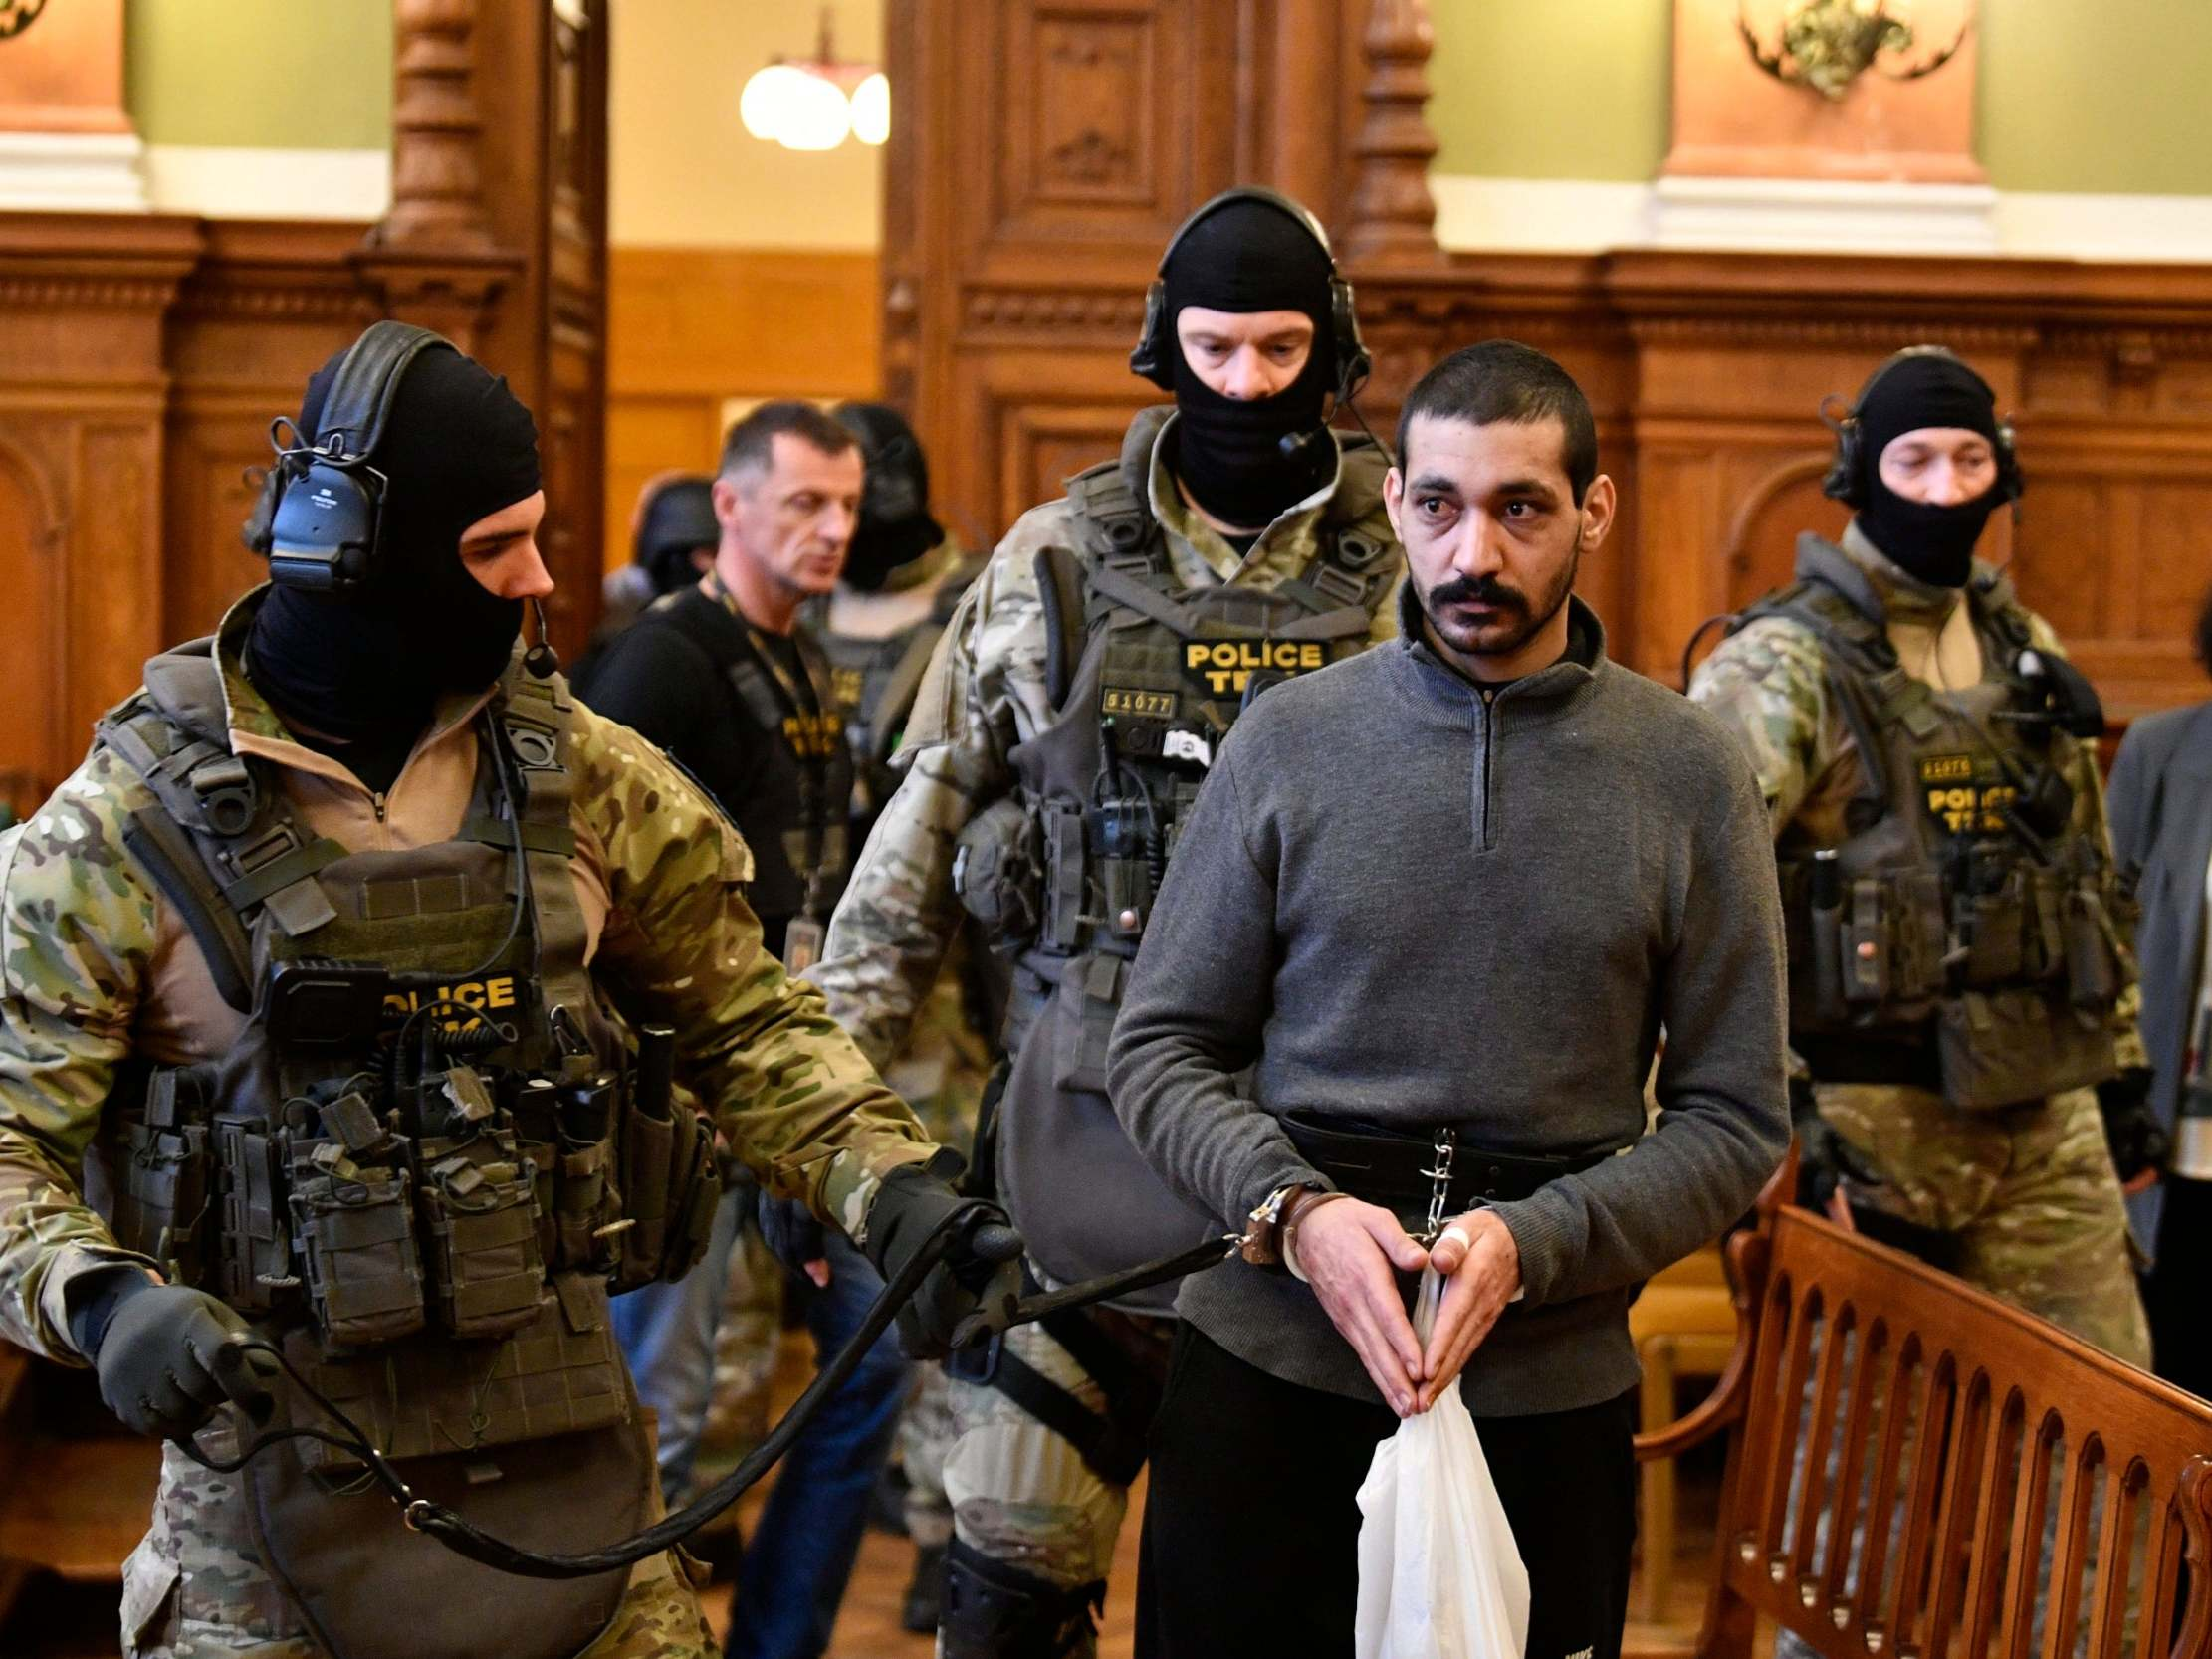 'Isis leader who beheaded imam and ordered dozens of killings' on trial in Hungary